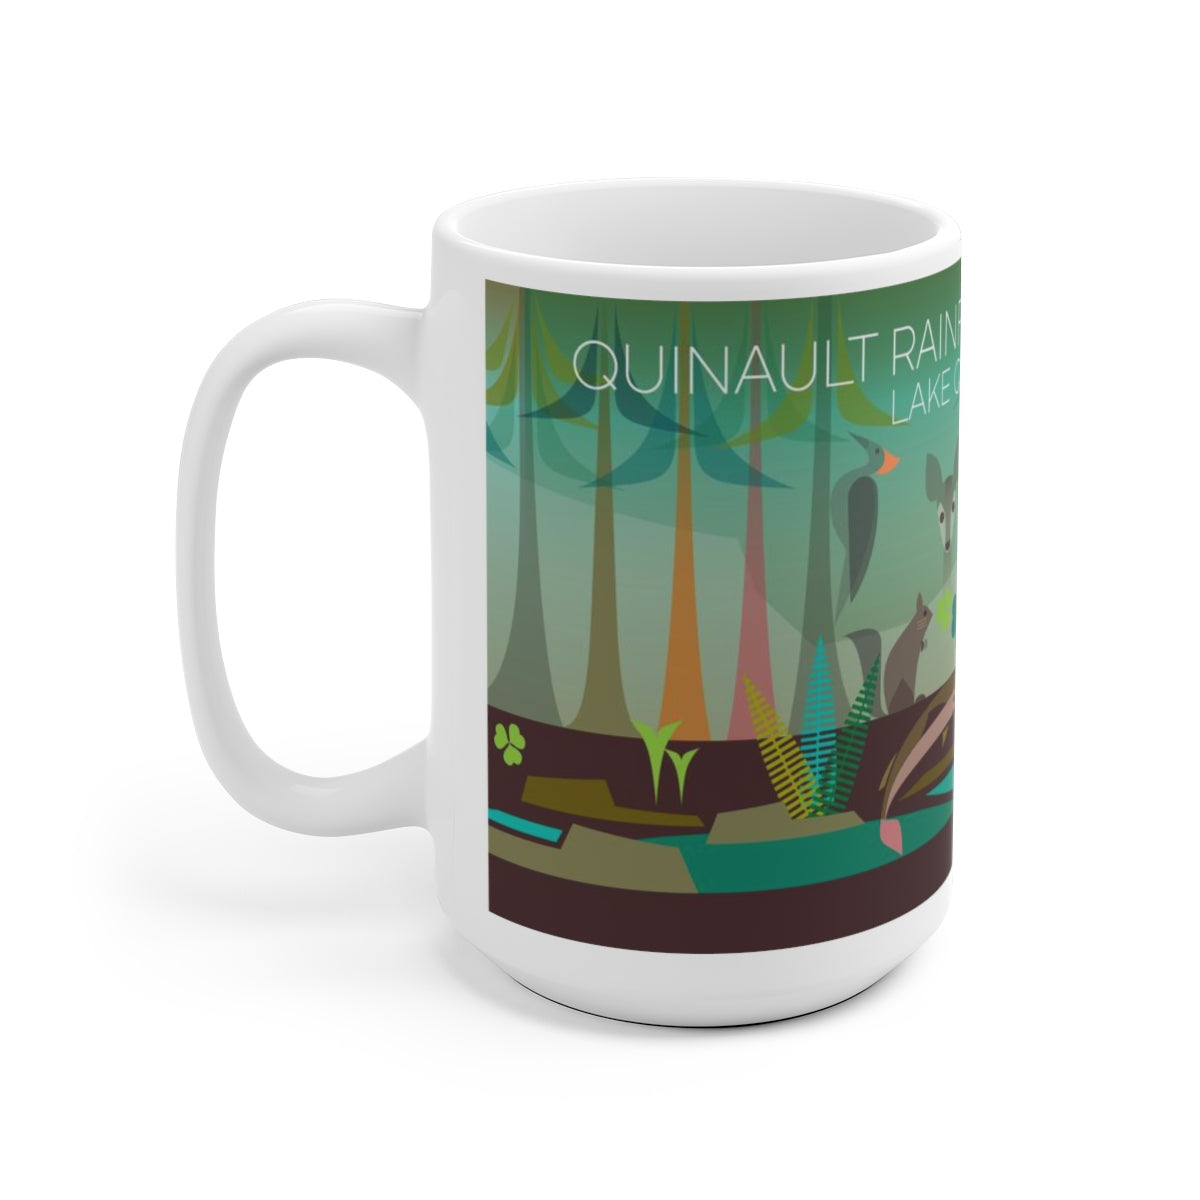 QUINAULT RAINFOREST 15 OZ CERAMIC MUG